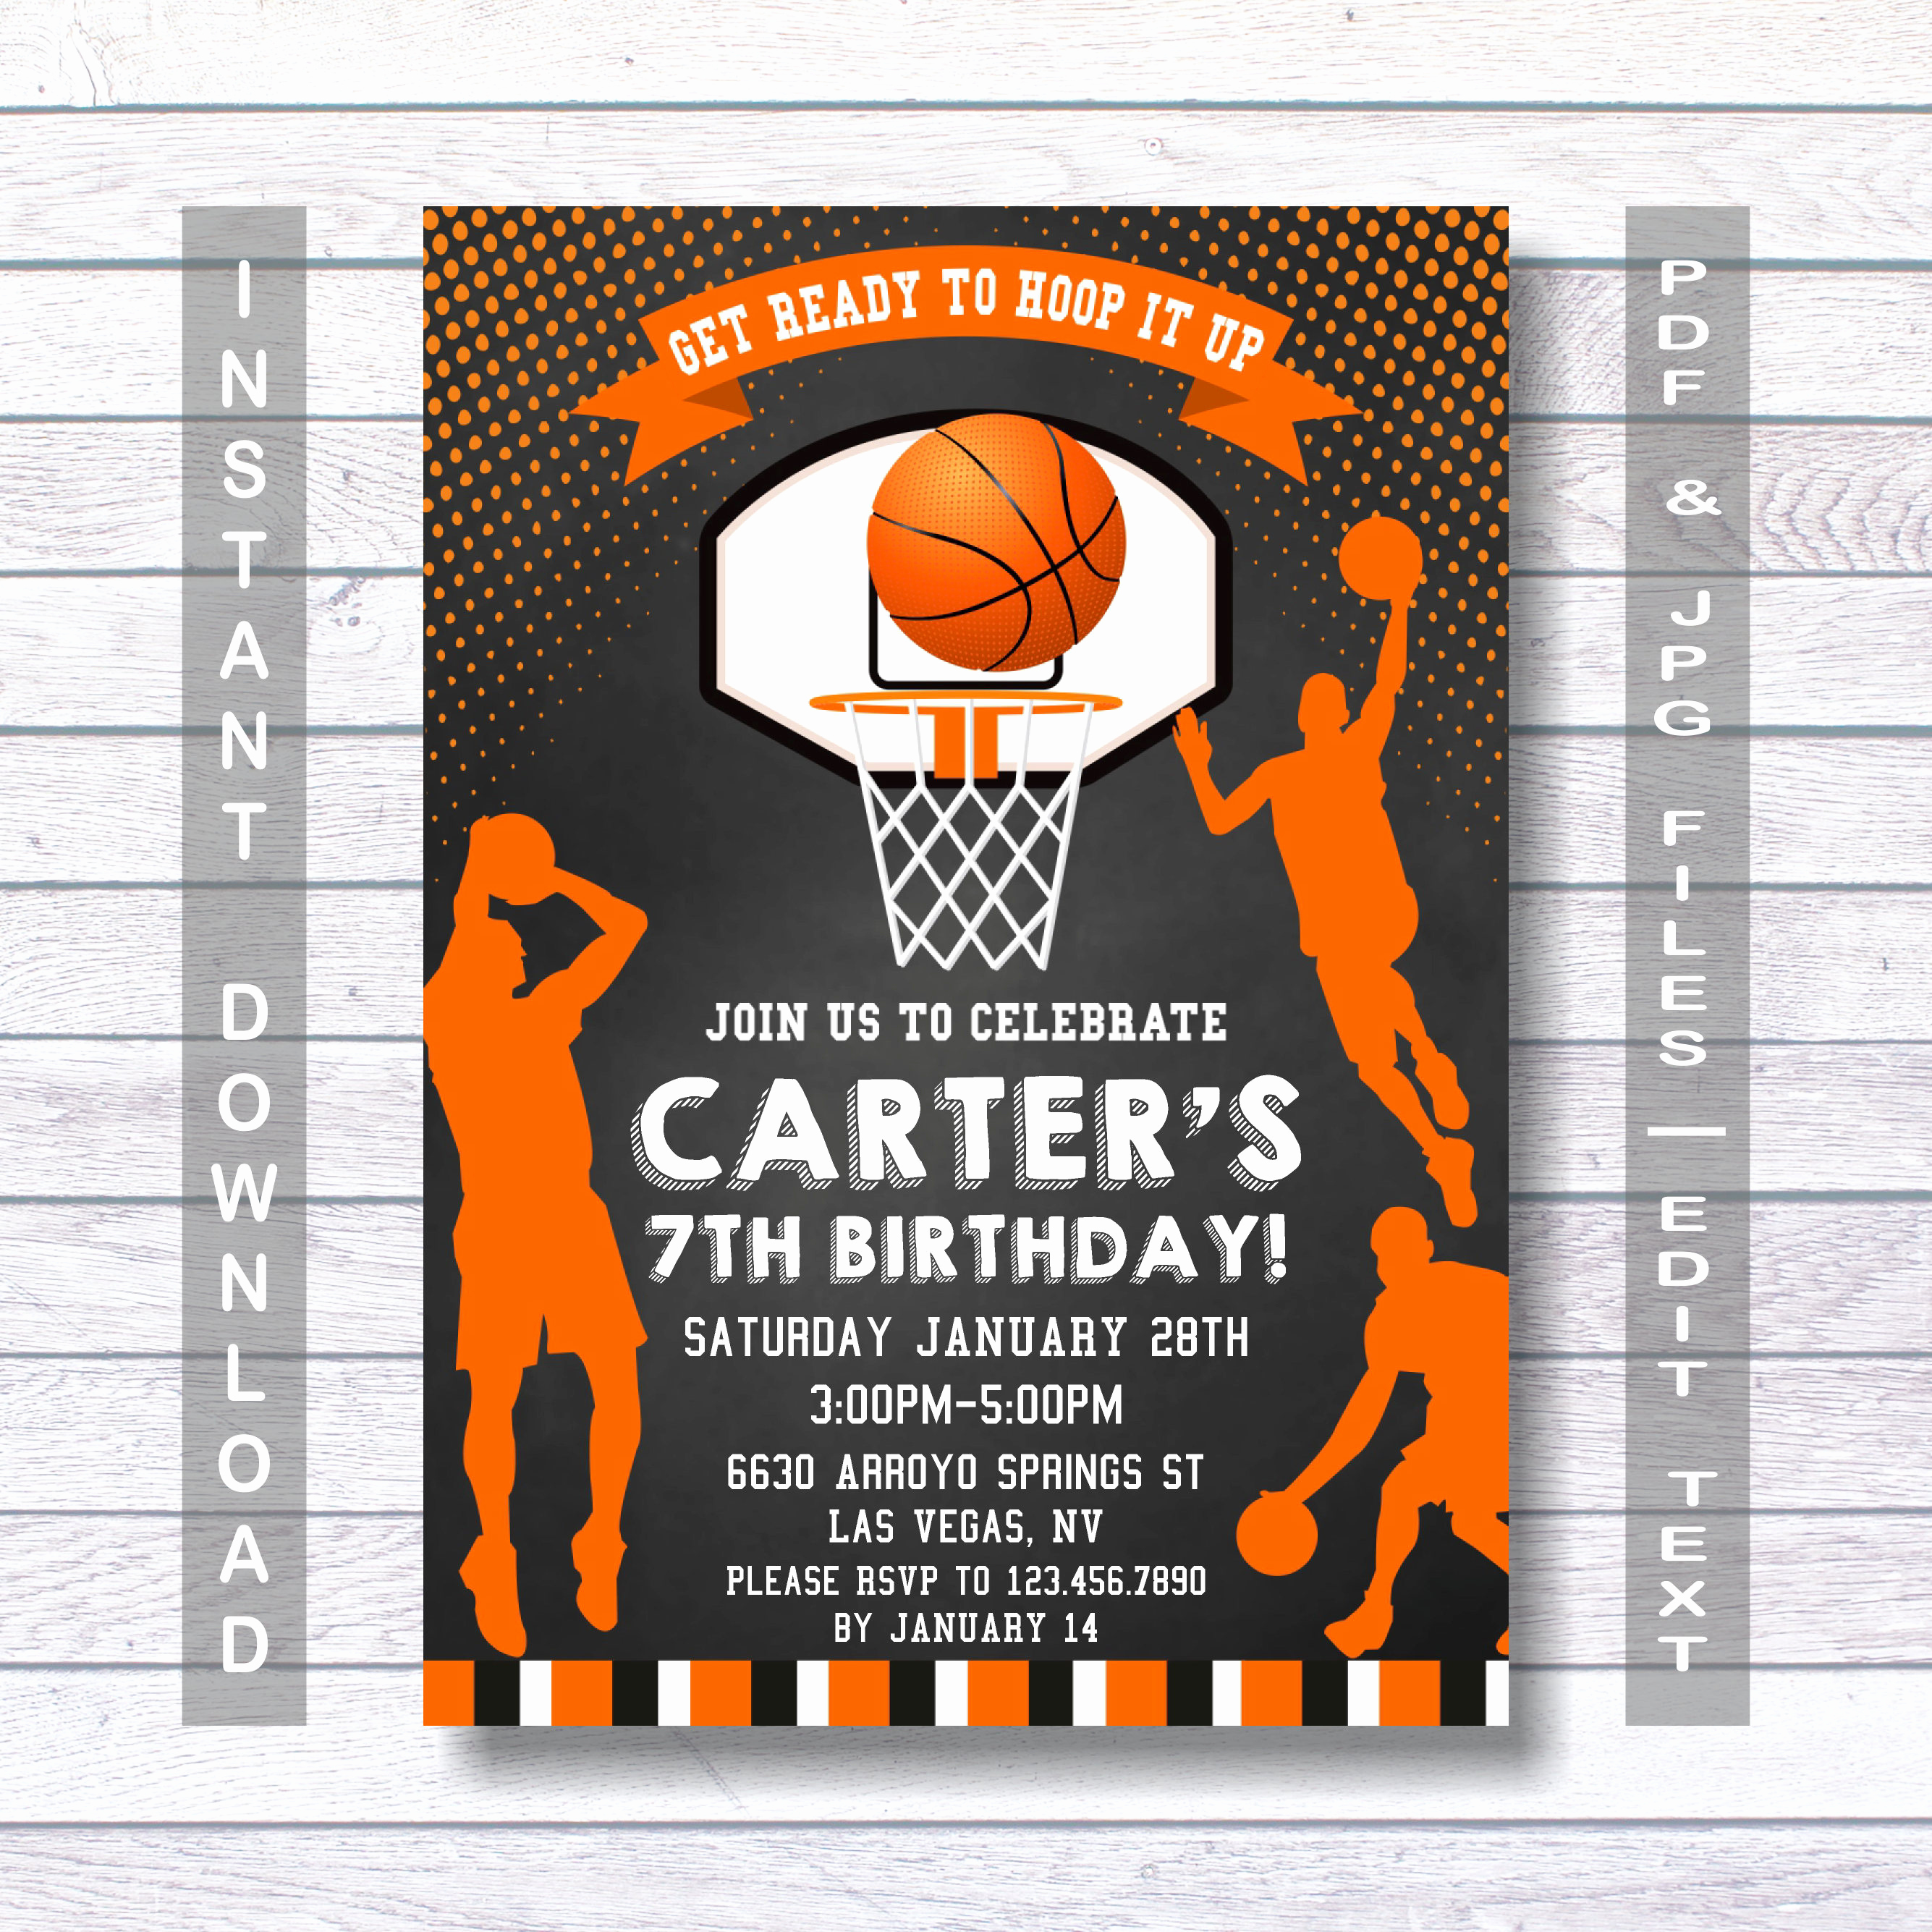 Free Basketball Invitation Templates Unique Basketball Invitations Basketball Birthday Invitation